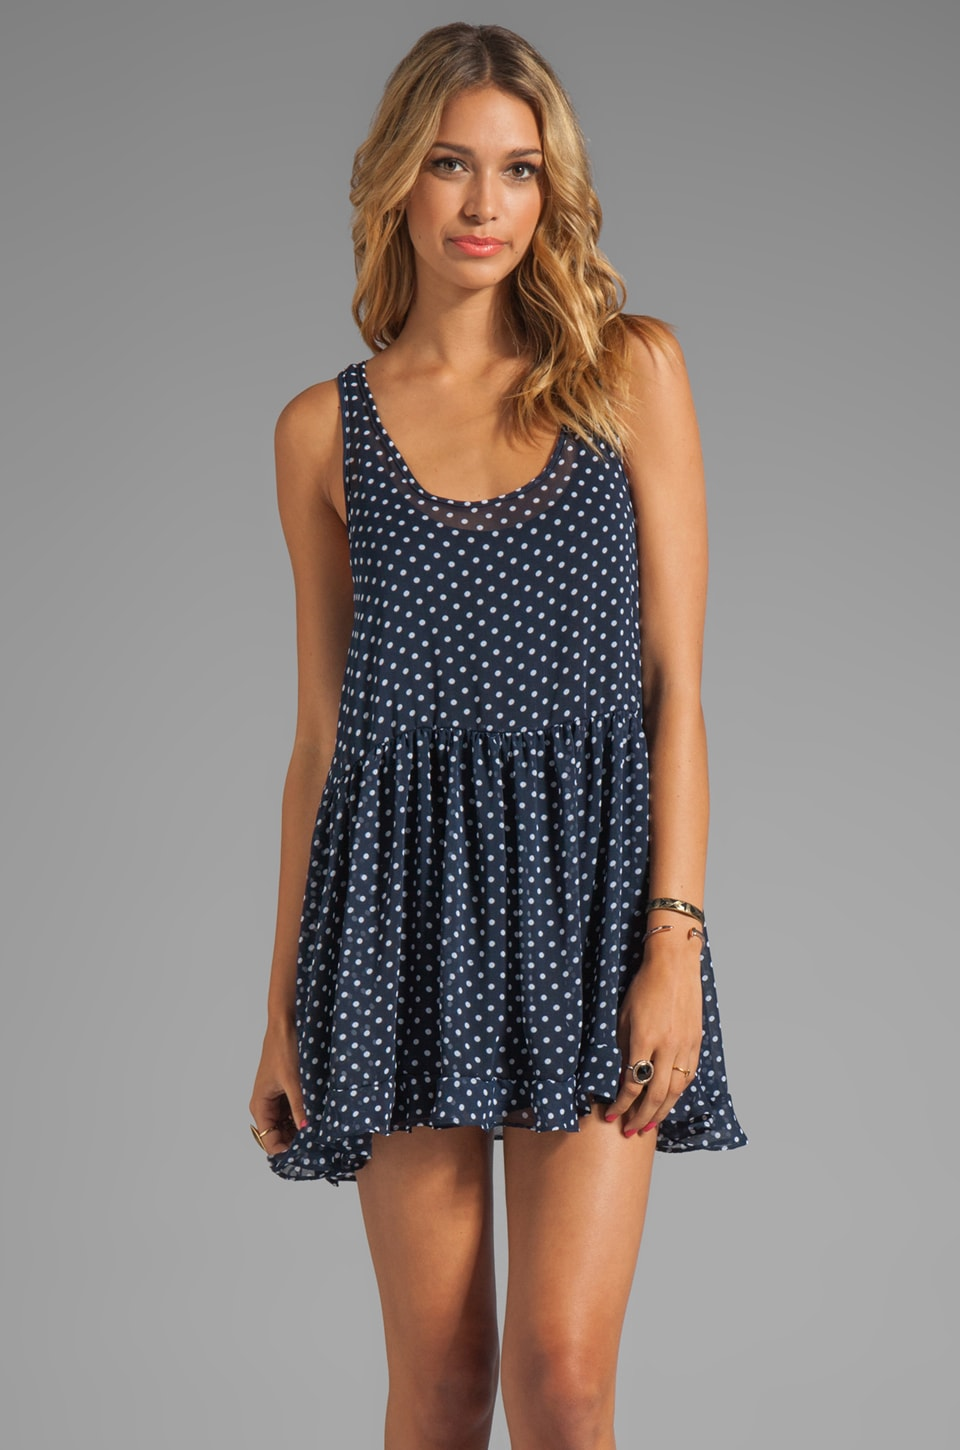 Tylie Mini Tank Dress in Polks Dot